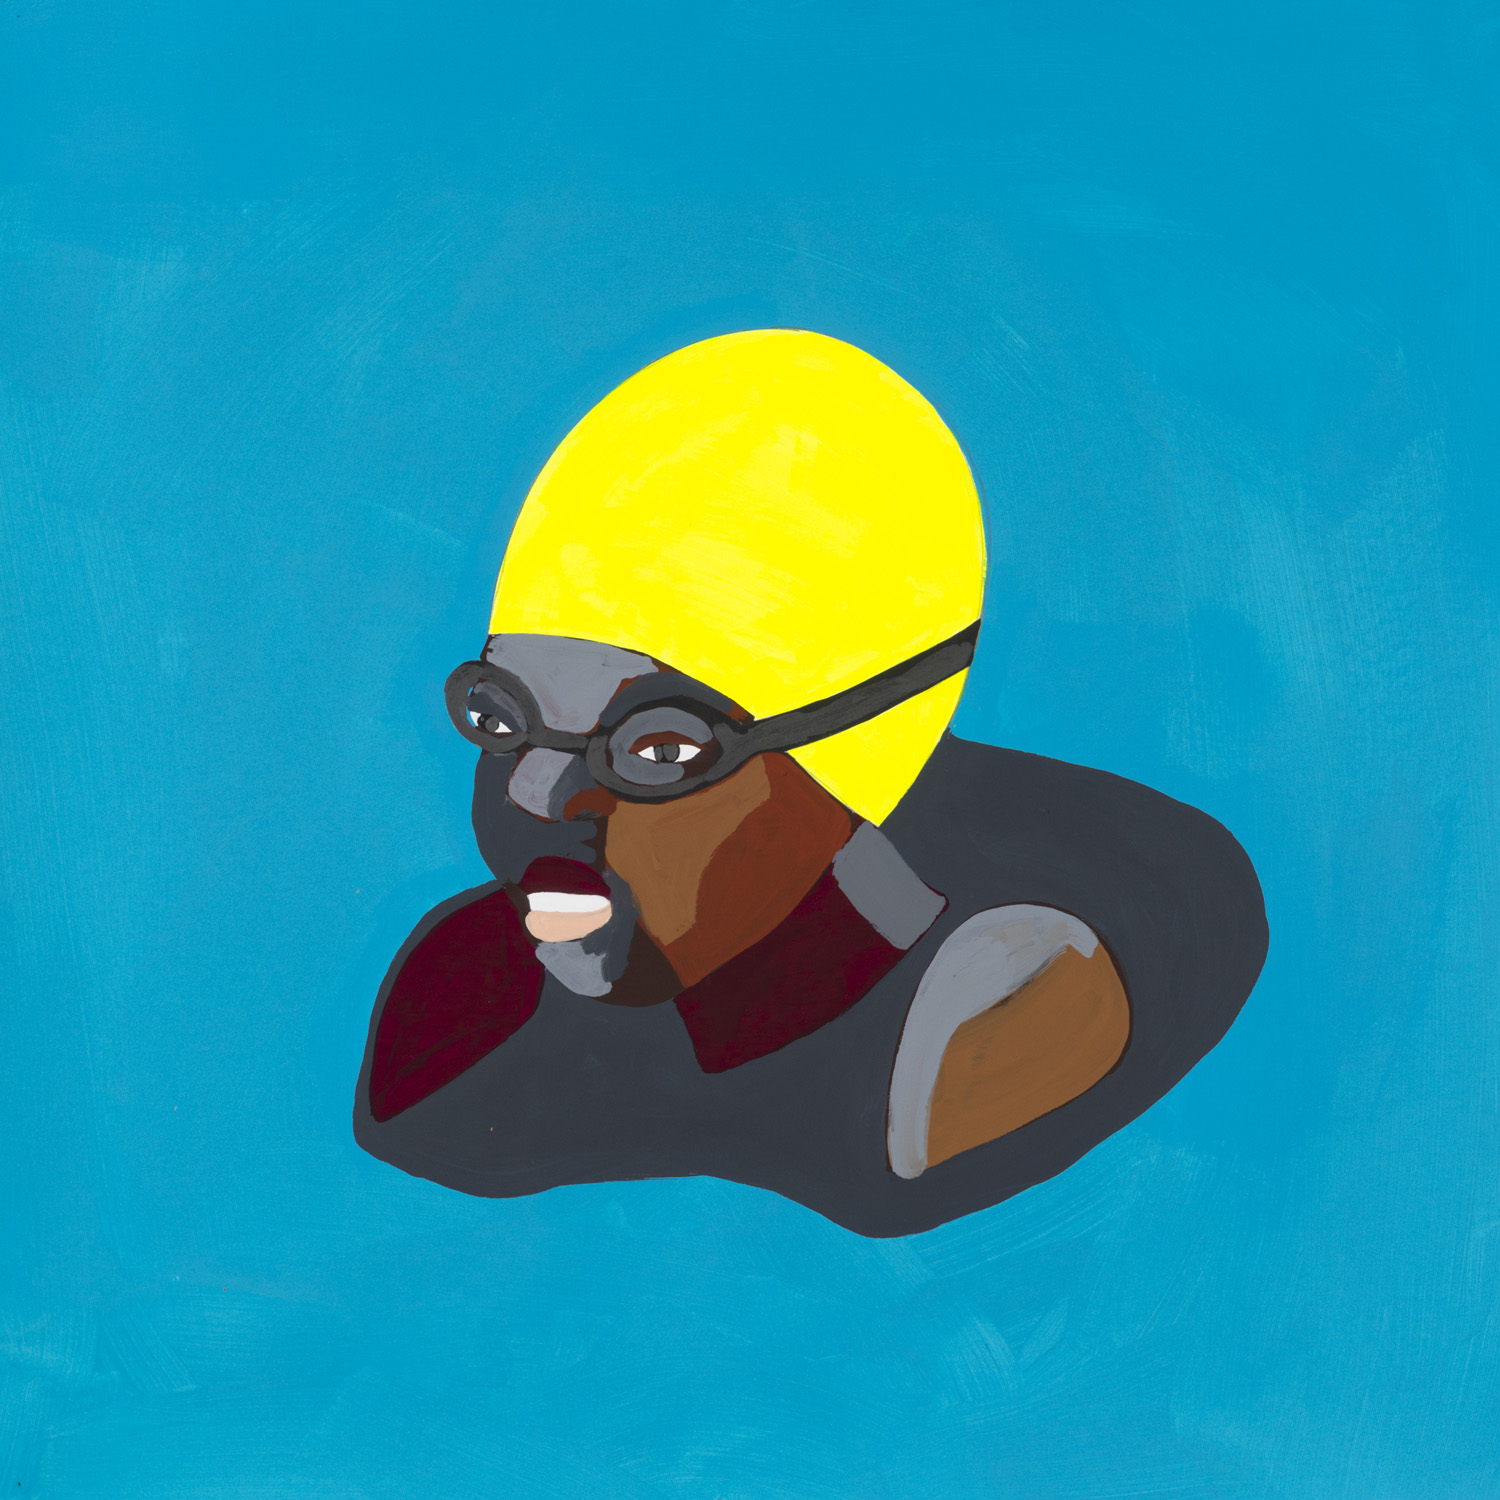 Floater 55 (yellow swimcap)